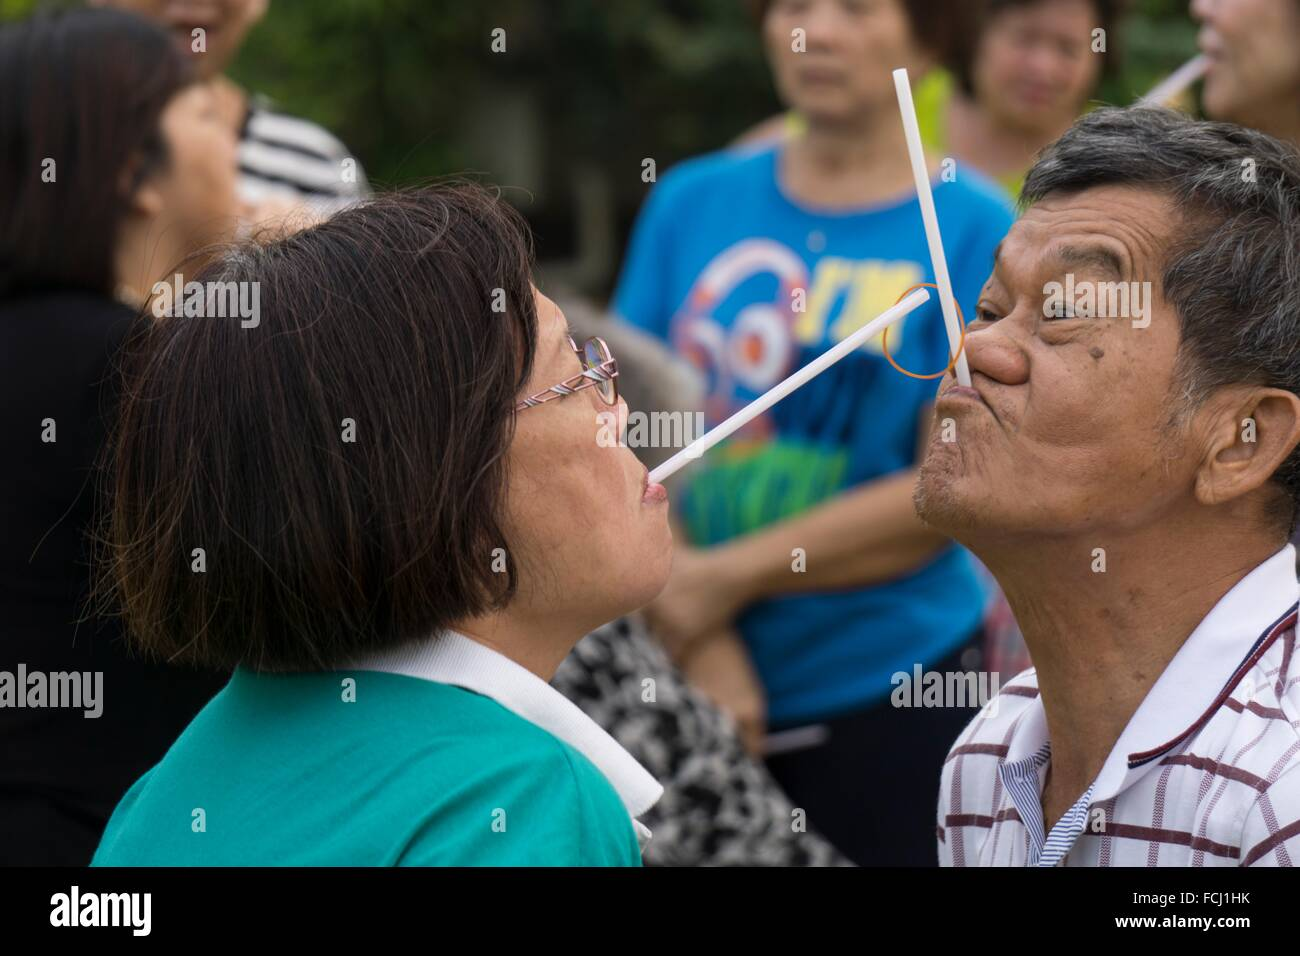 Passing The Rubber Band With Straw By Mouth Game Played At